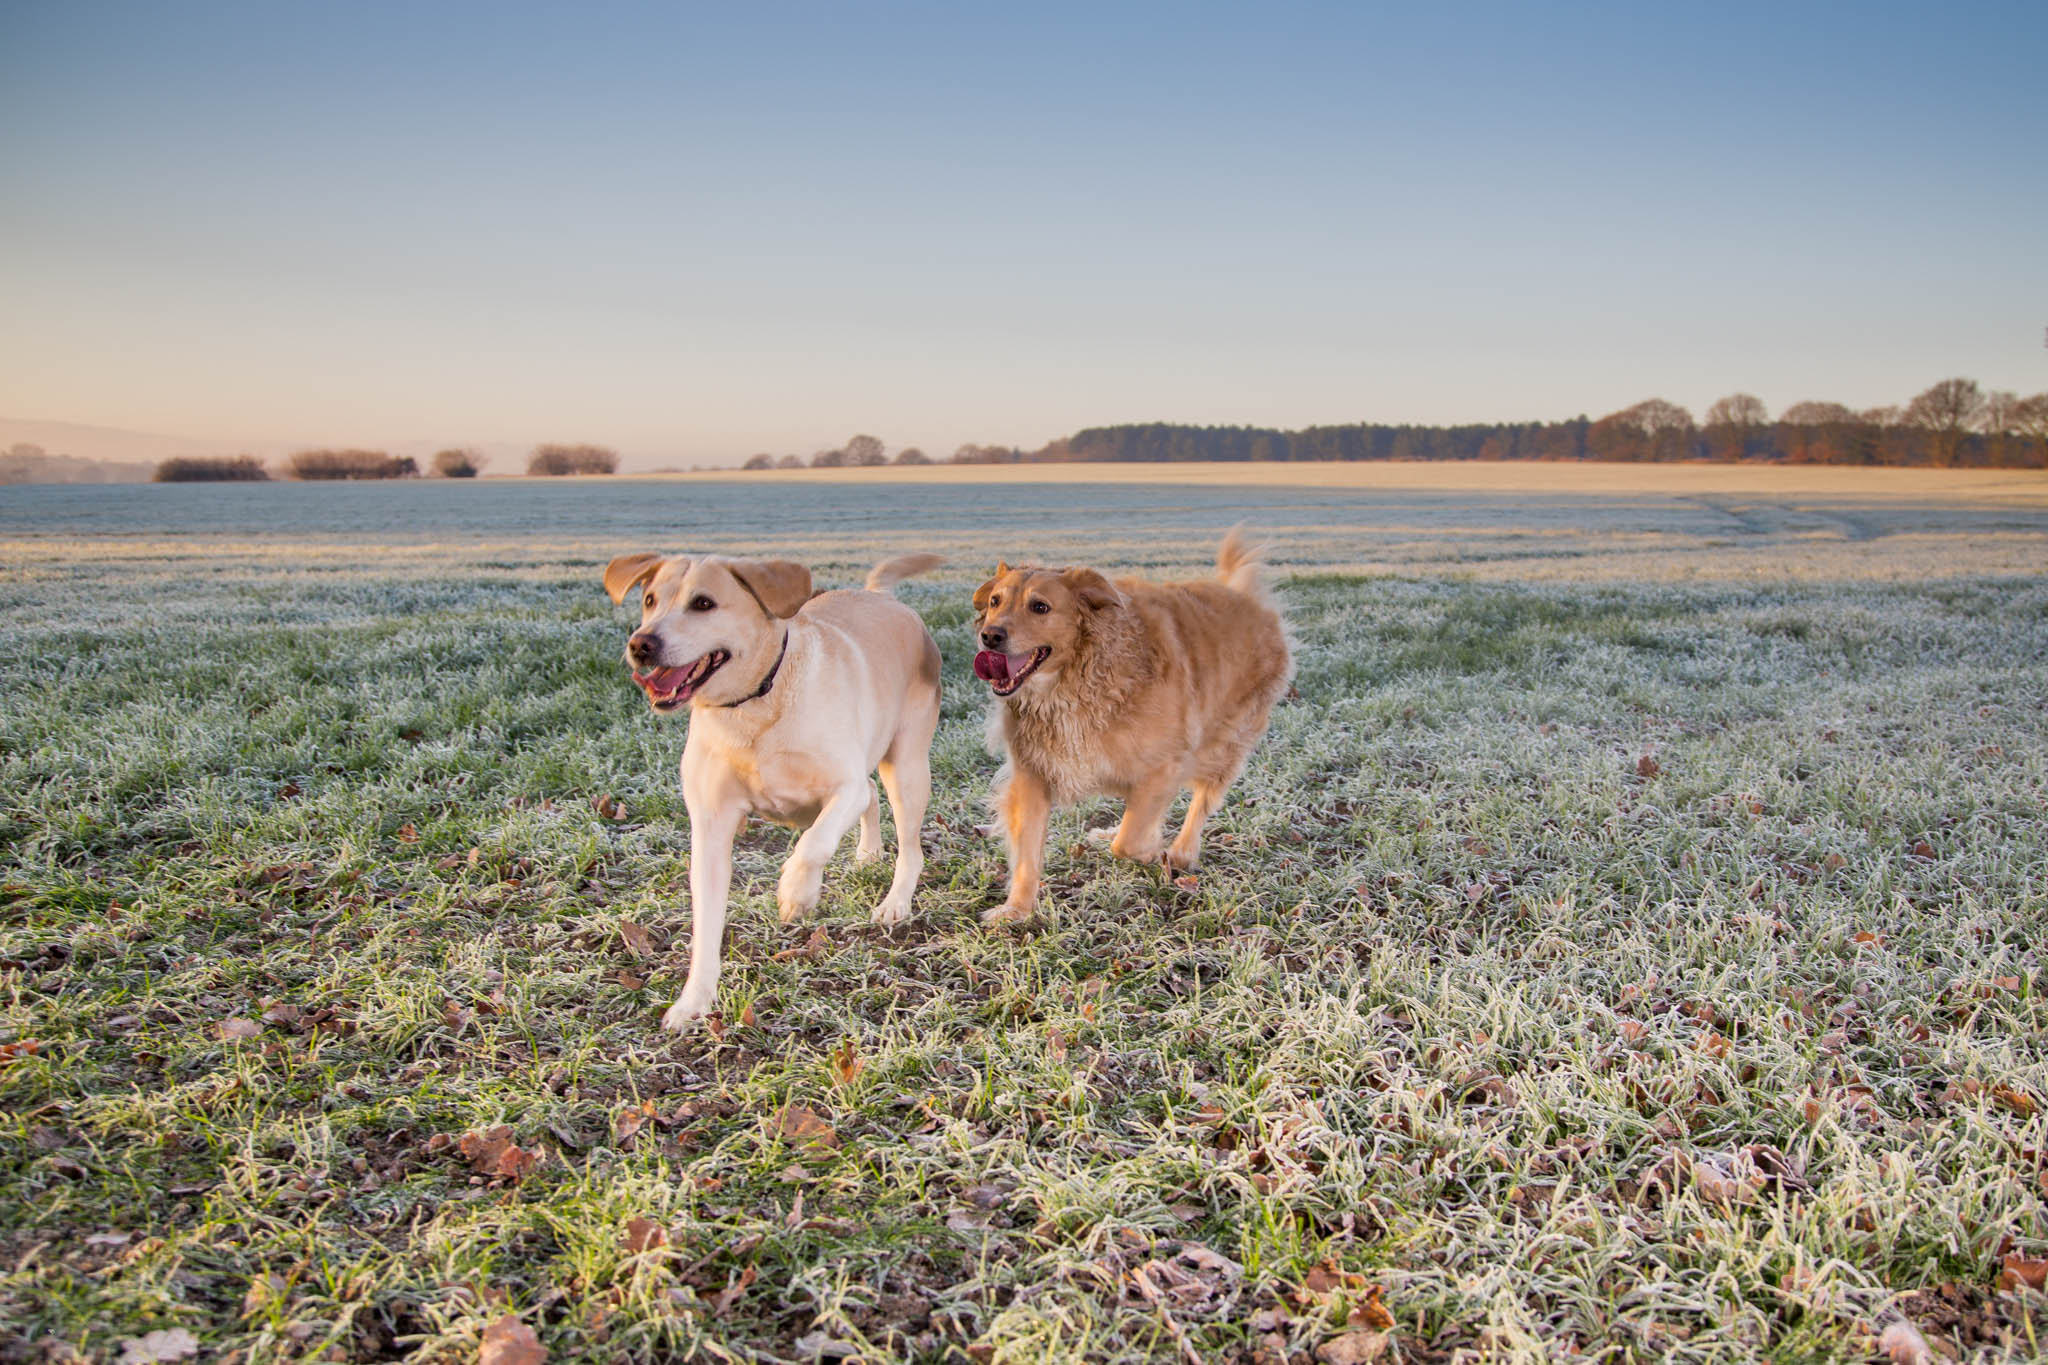 2 dogs running on the frozen ground in winter